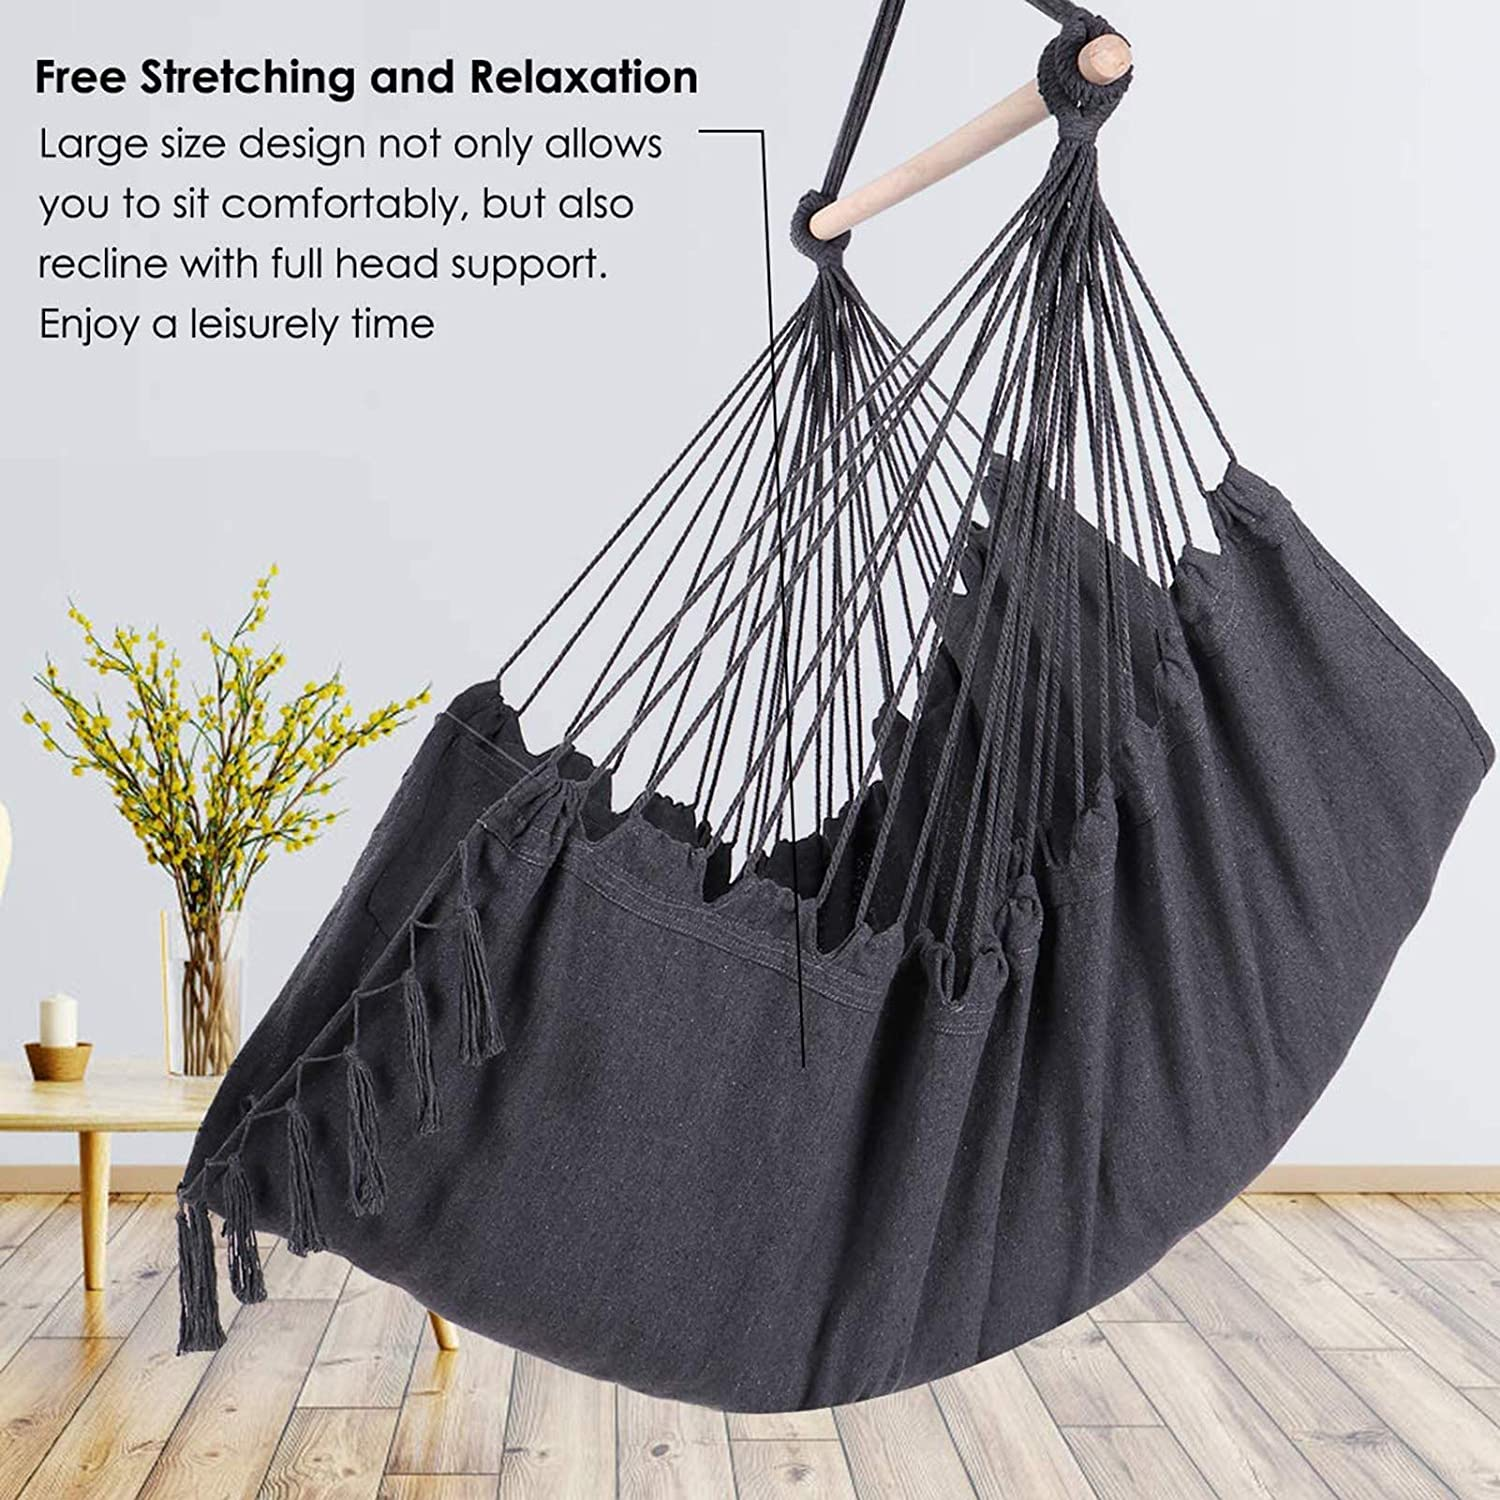 Hanging Chair Cotton Canvas Hammock Chair Hanging Rope Swing Seat for Bedroom Indoor Outdoor Bcamelys Hammock Chair Swing Include Two Soft Seat Cushions American Transportation, Fast Delivery